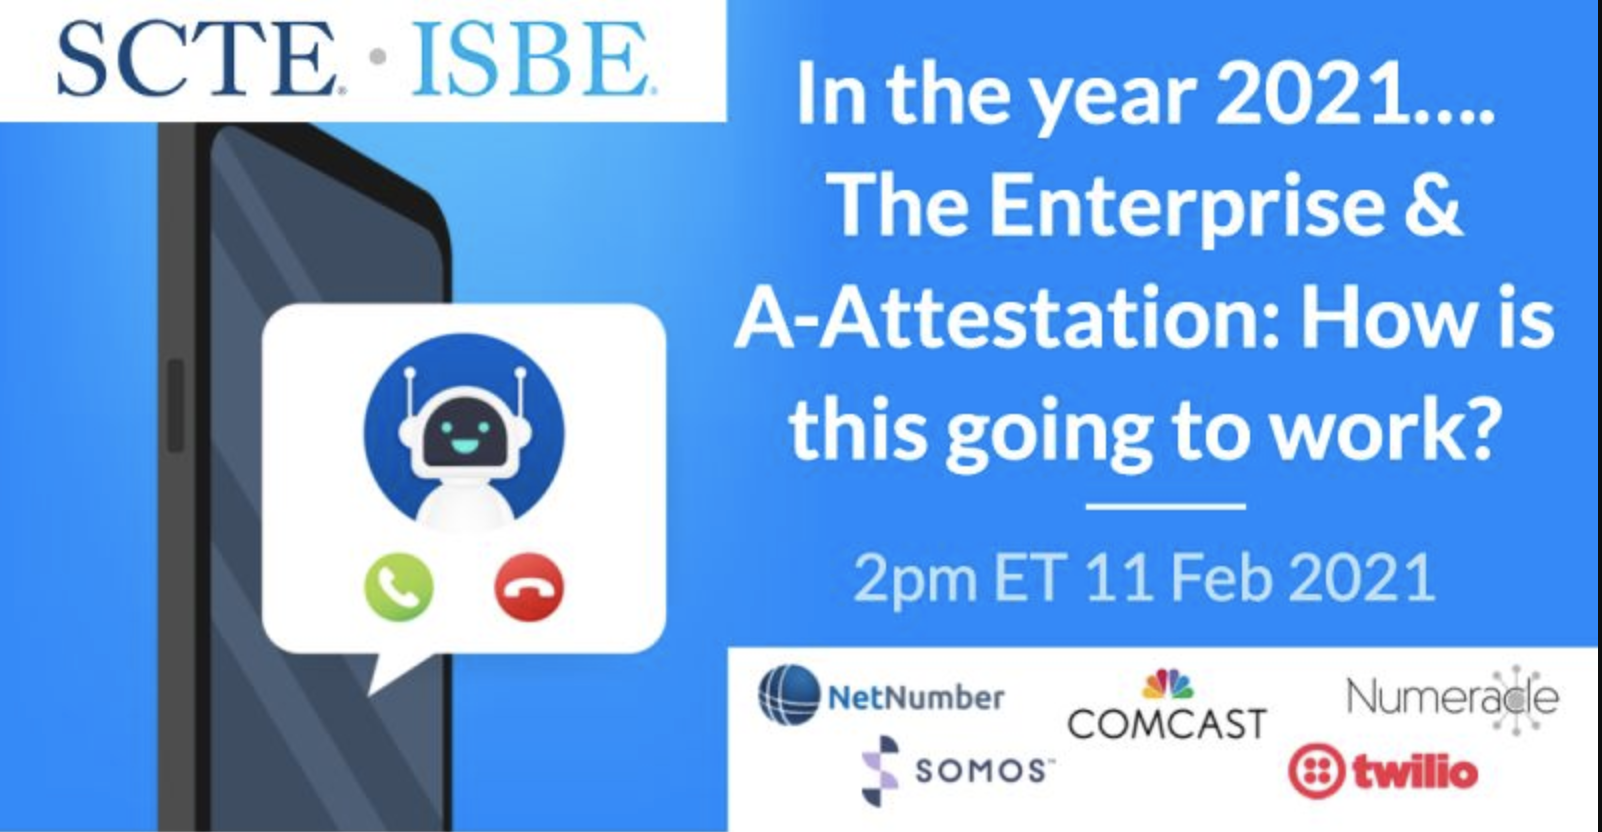 """SCTE Webinar """"The Enterprise & A-Attestation: How is this going to work?"""""""